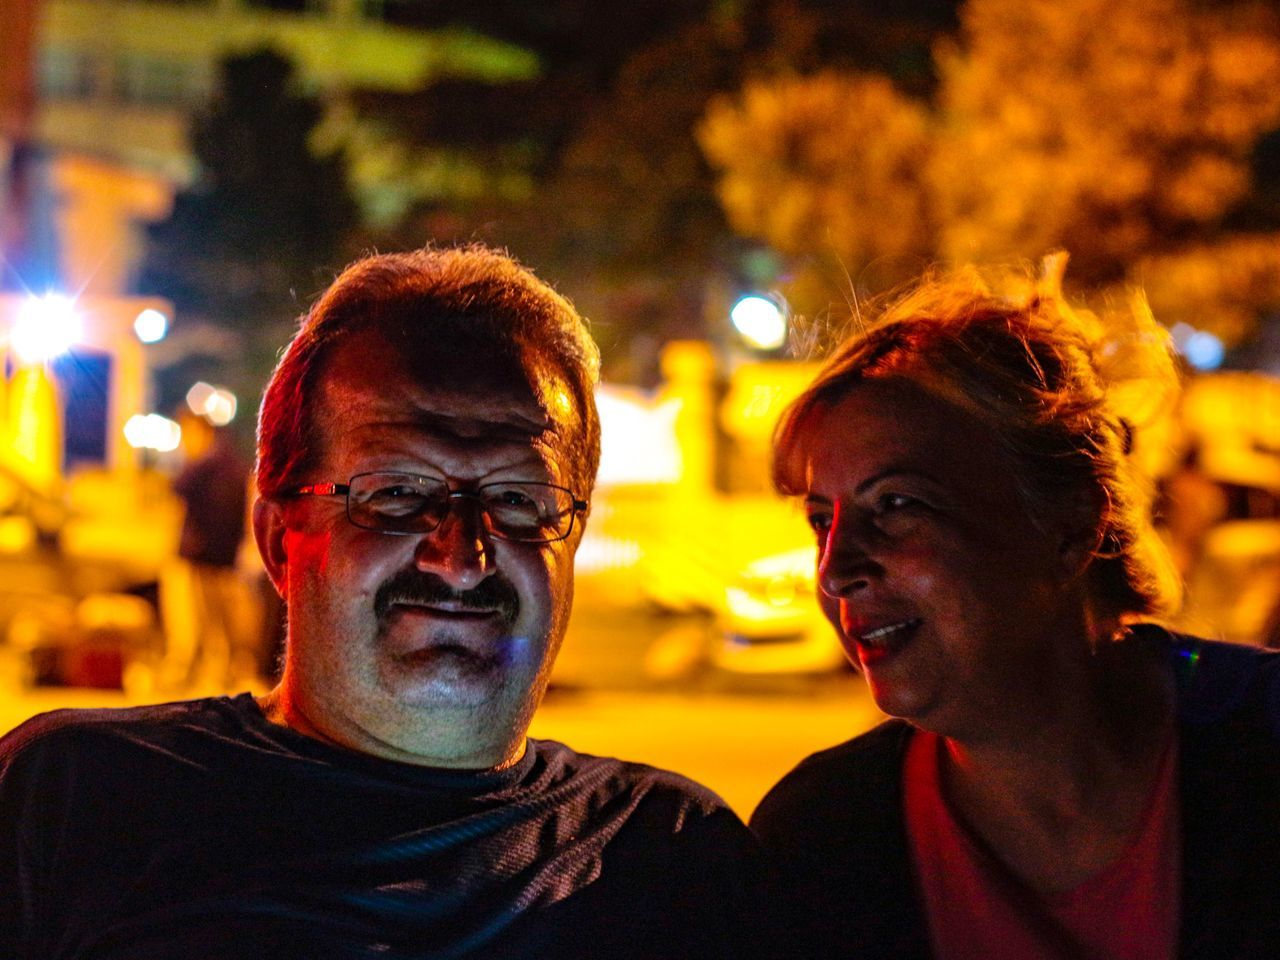 EyeEm Selects EyeEmNewHere Two People Night Illuminated Real People Togetherness Focus On Foreground Love Mature Men Mature Adult Lifestyles Bonding Men Headshot Young Adult Eyeglasses  Portrait Young Women Indoors  Close-up Adult